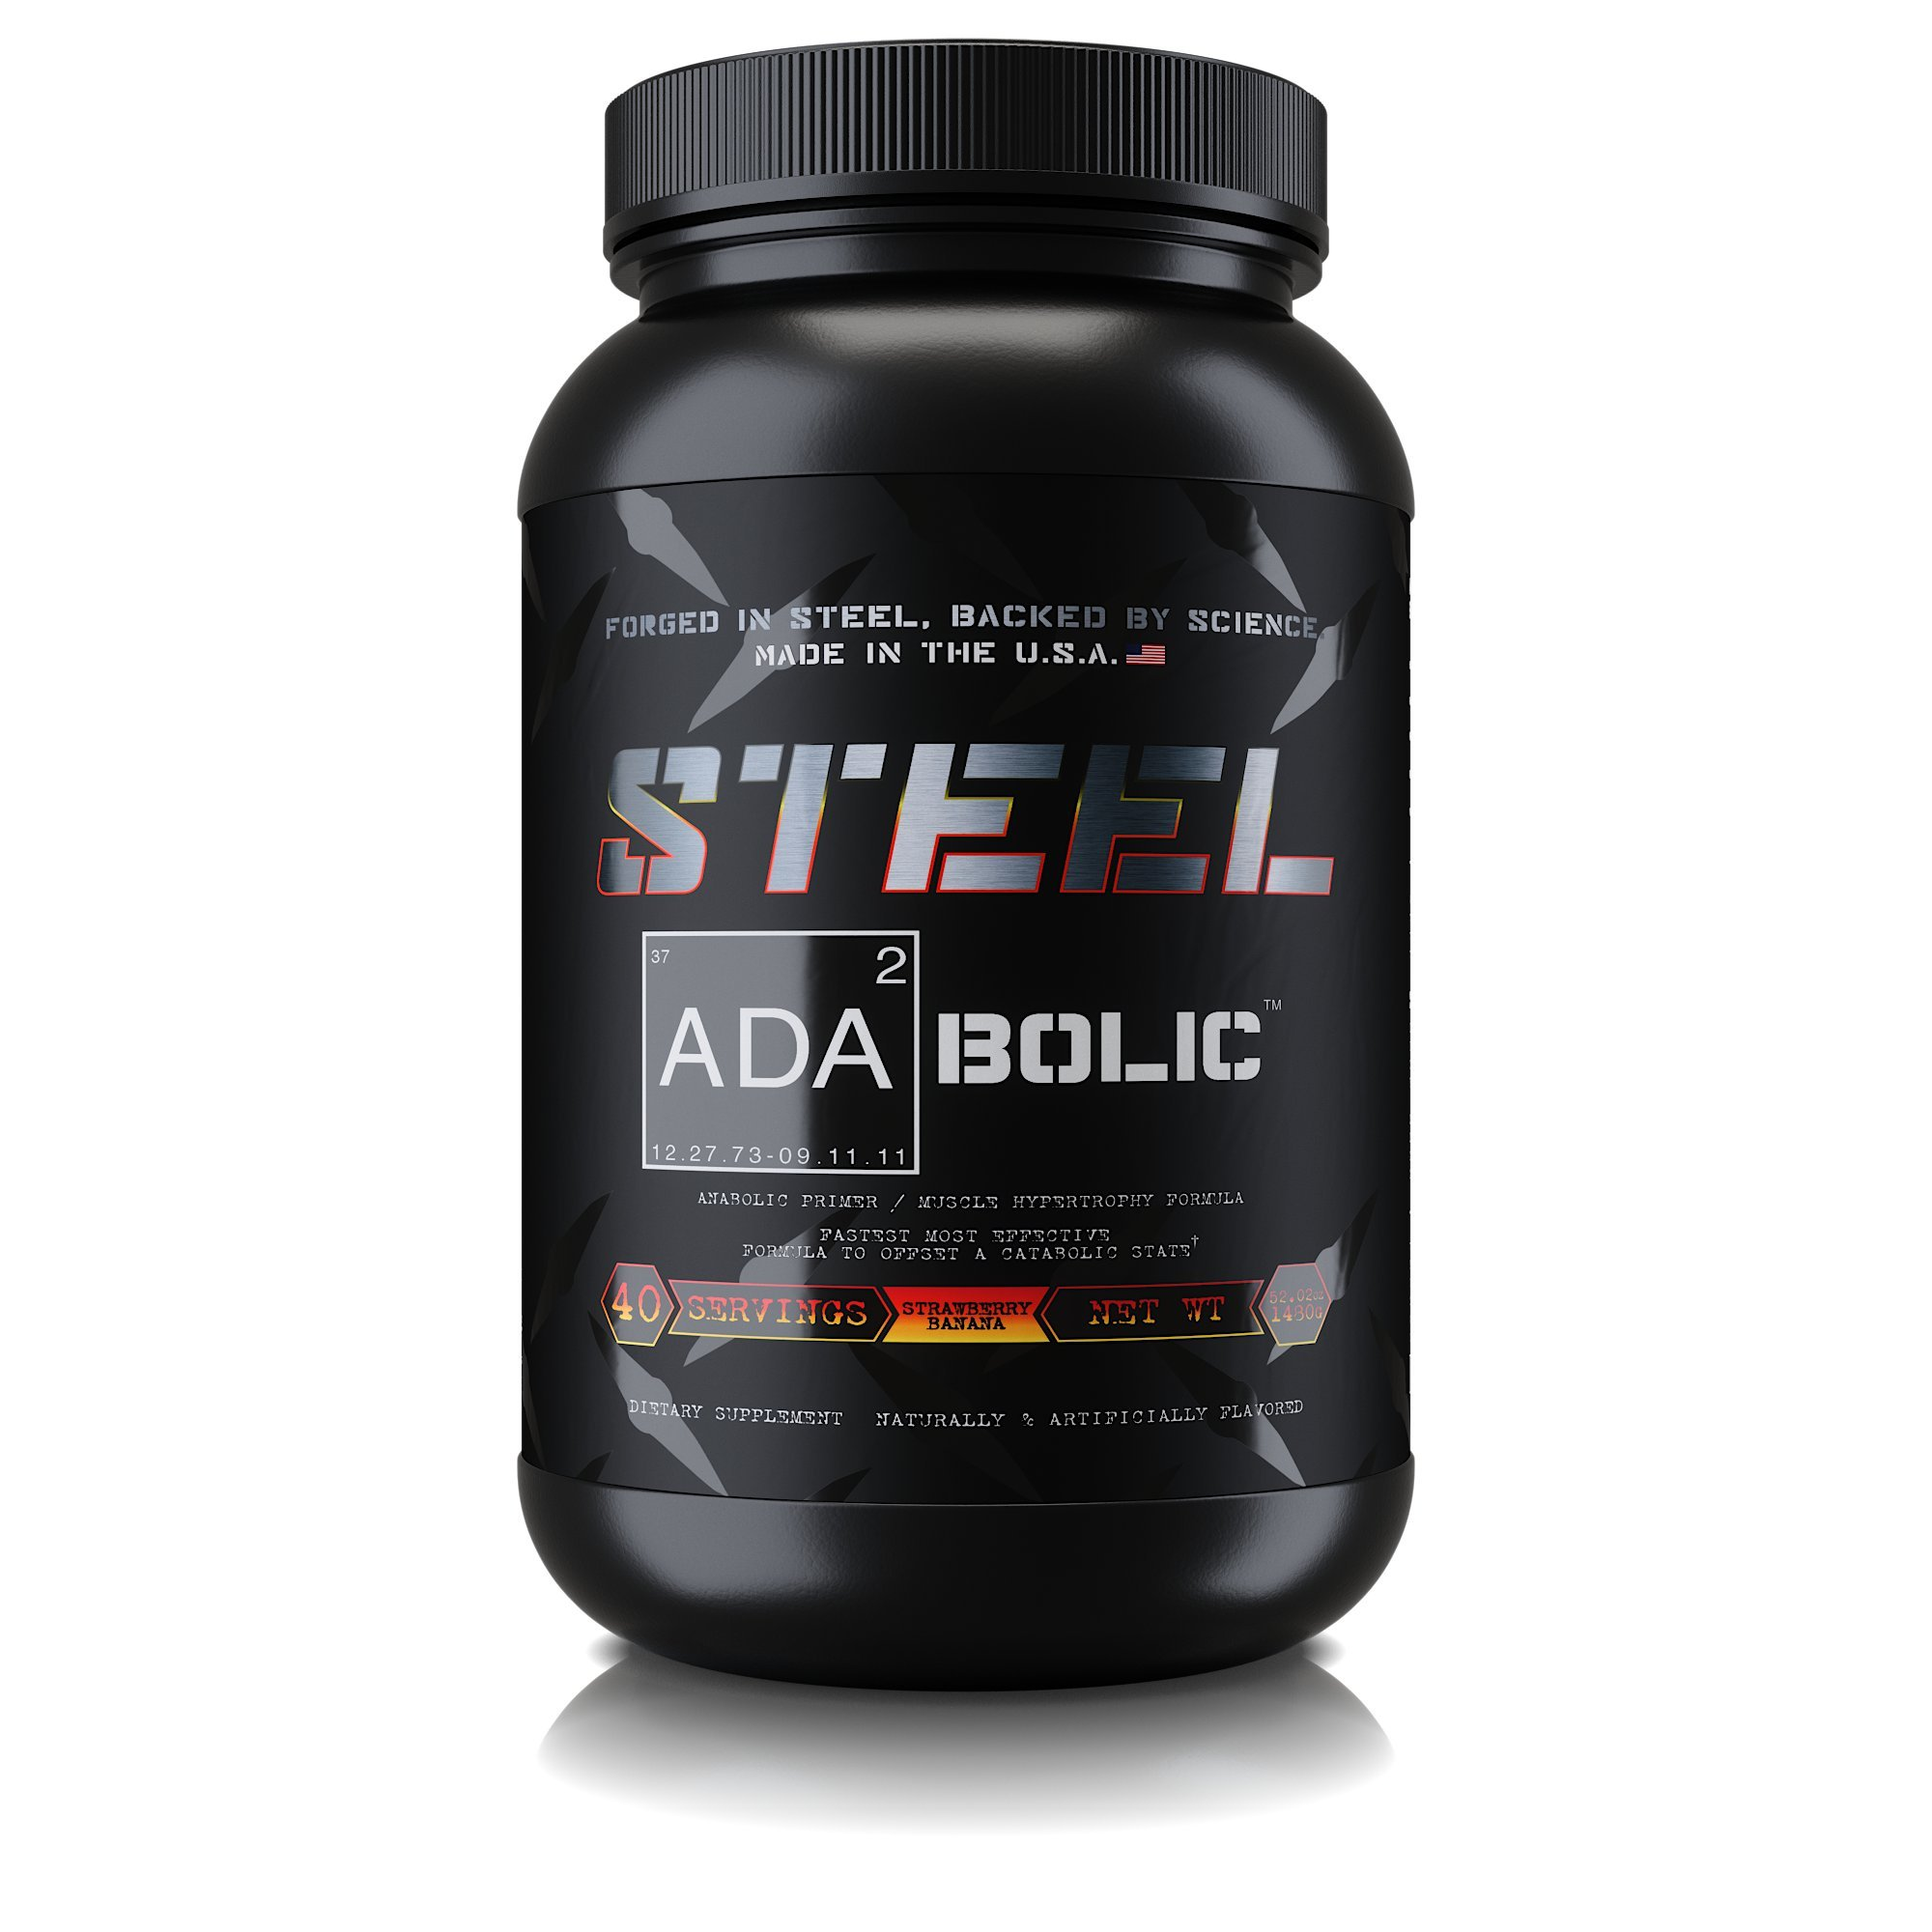 35e570d23 Steel Supplements ADA2Bolic Workout Recovery Aid Powder Restores Muscle  Glycogen 3.75lbs (Strawberry Banana)